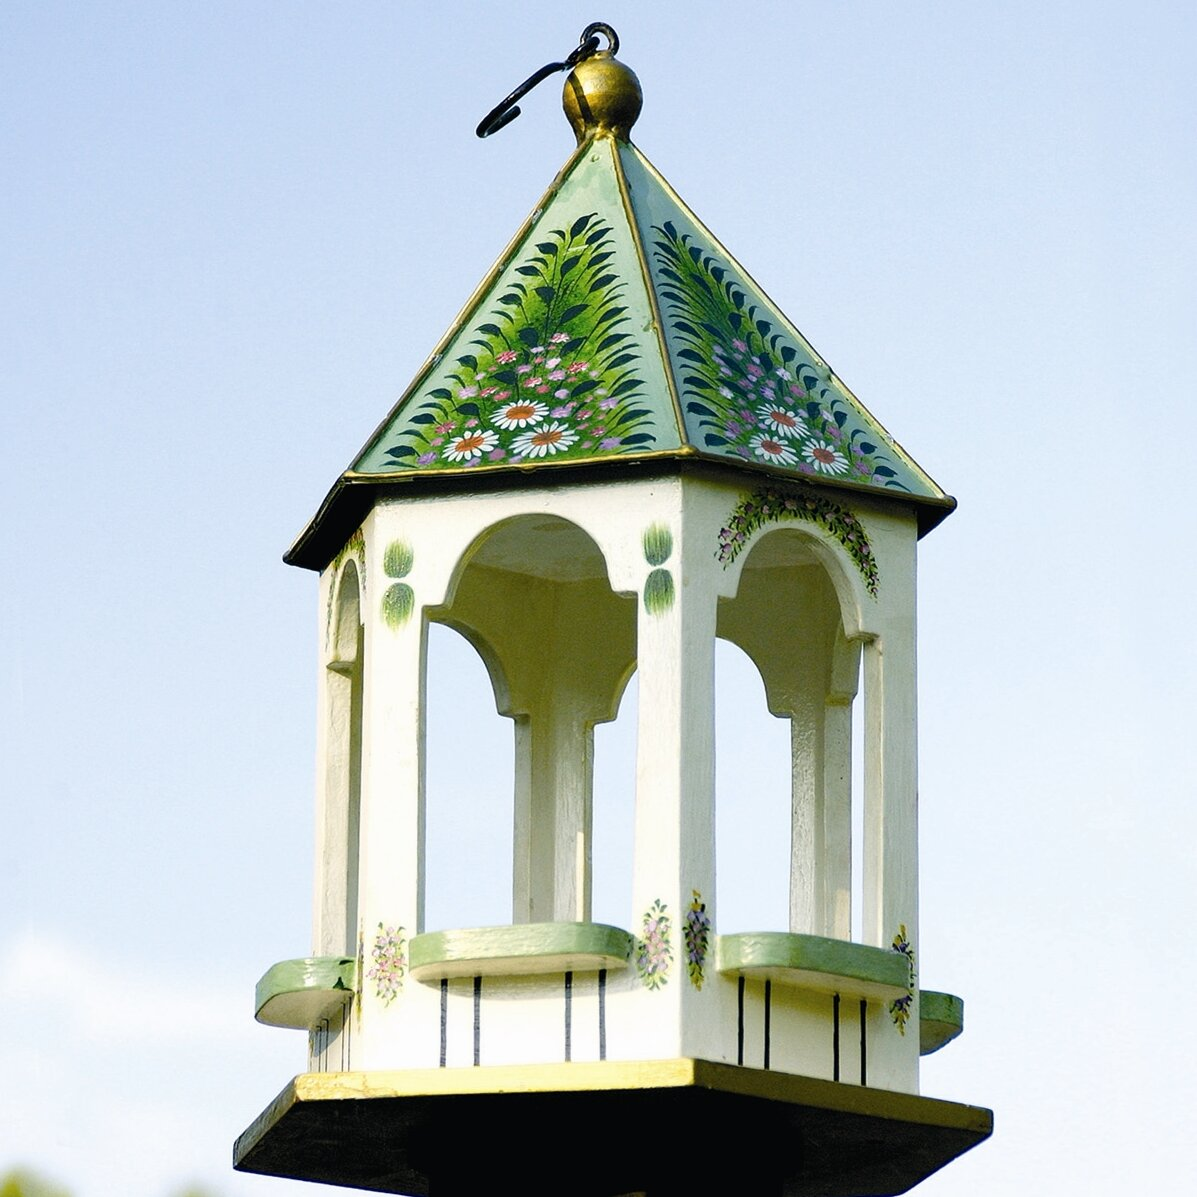 Victorian Backyard Birds : ACHLA Victorian Gazebo Bird Feeder & Reviews  Wayfair